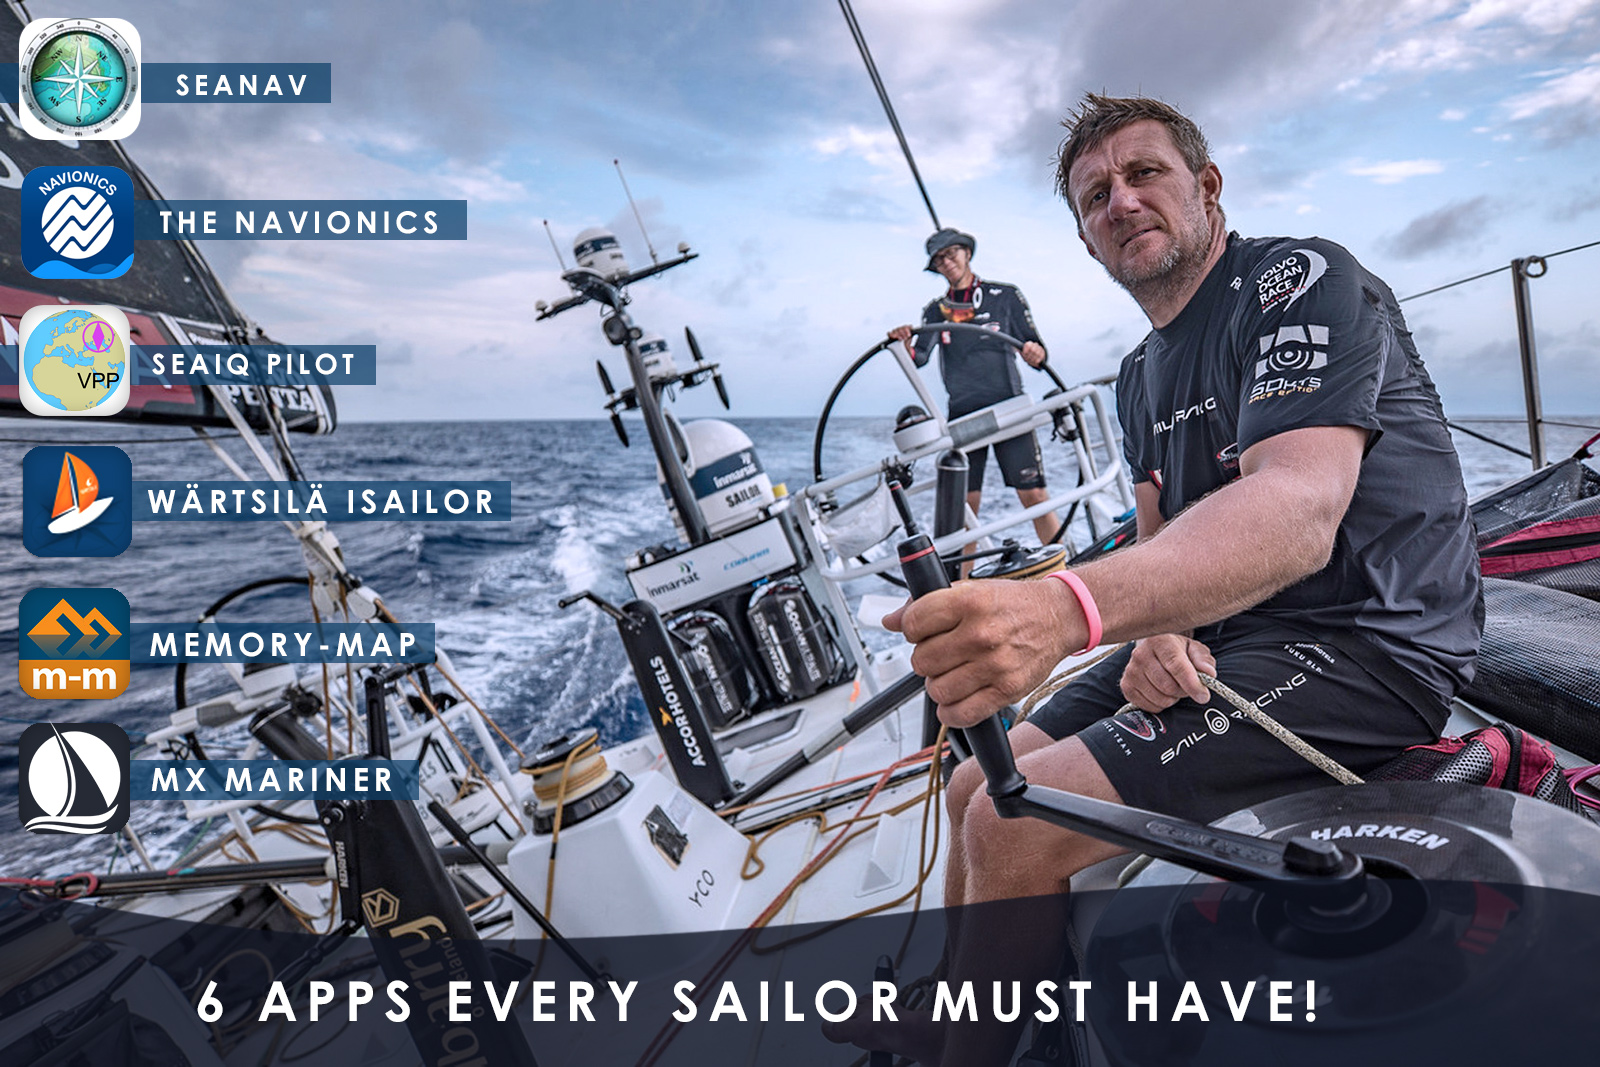 6 Apps Every Sailor Must Have!